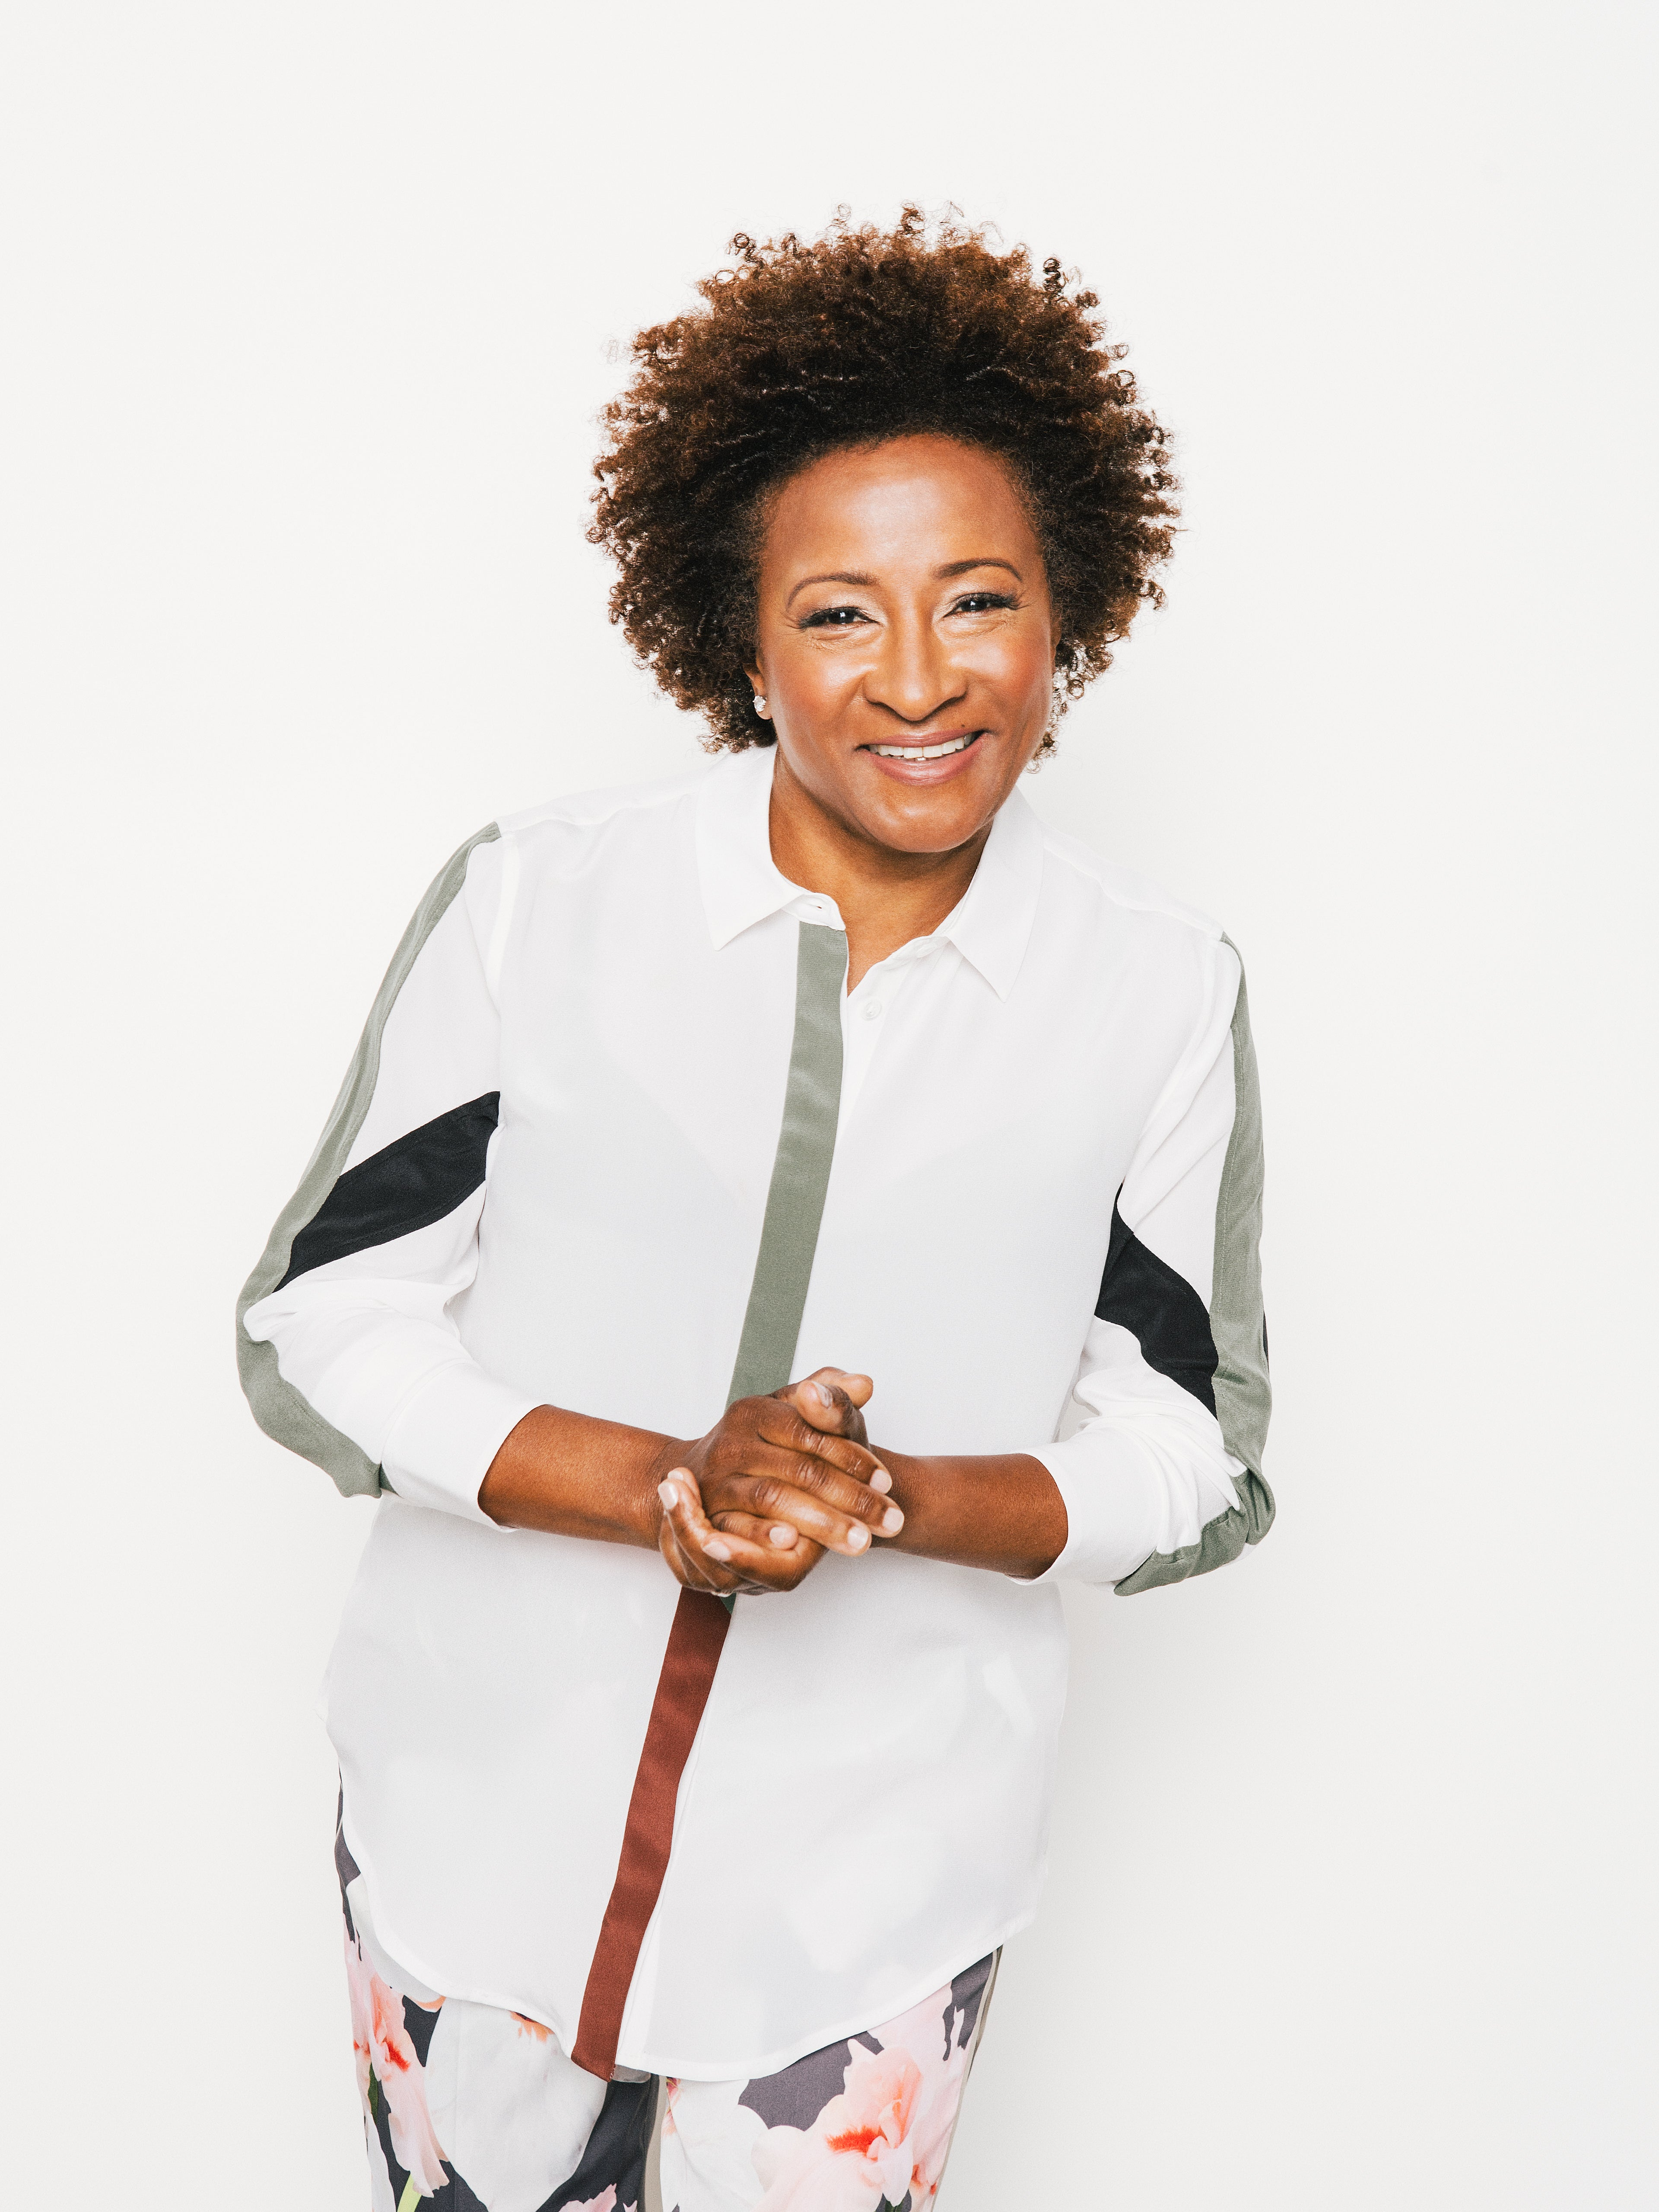 Discussion on this topic: Shannon McGinnis, wanda-sykes/